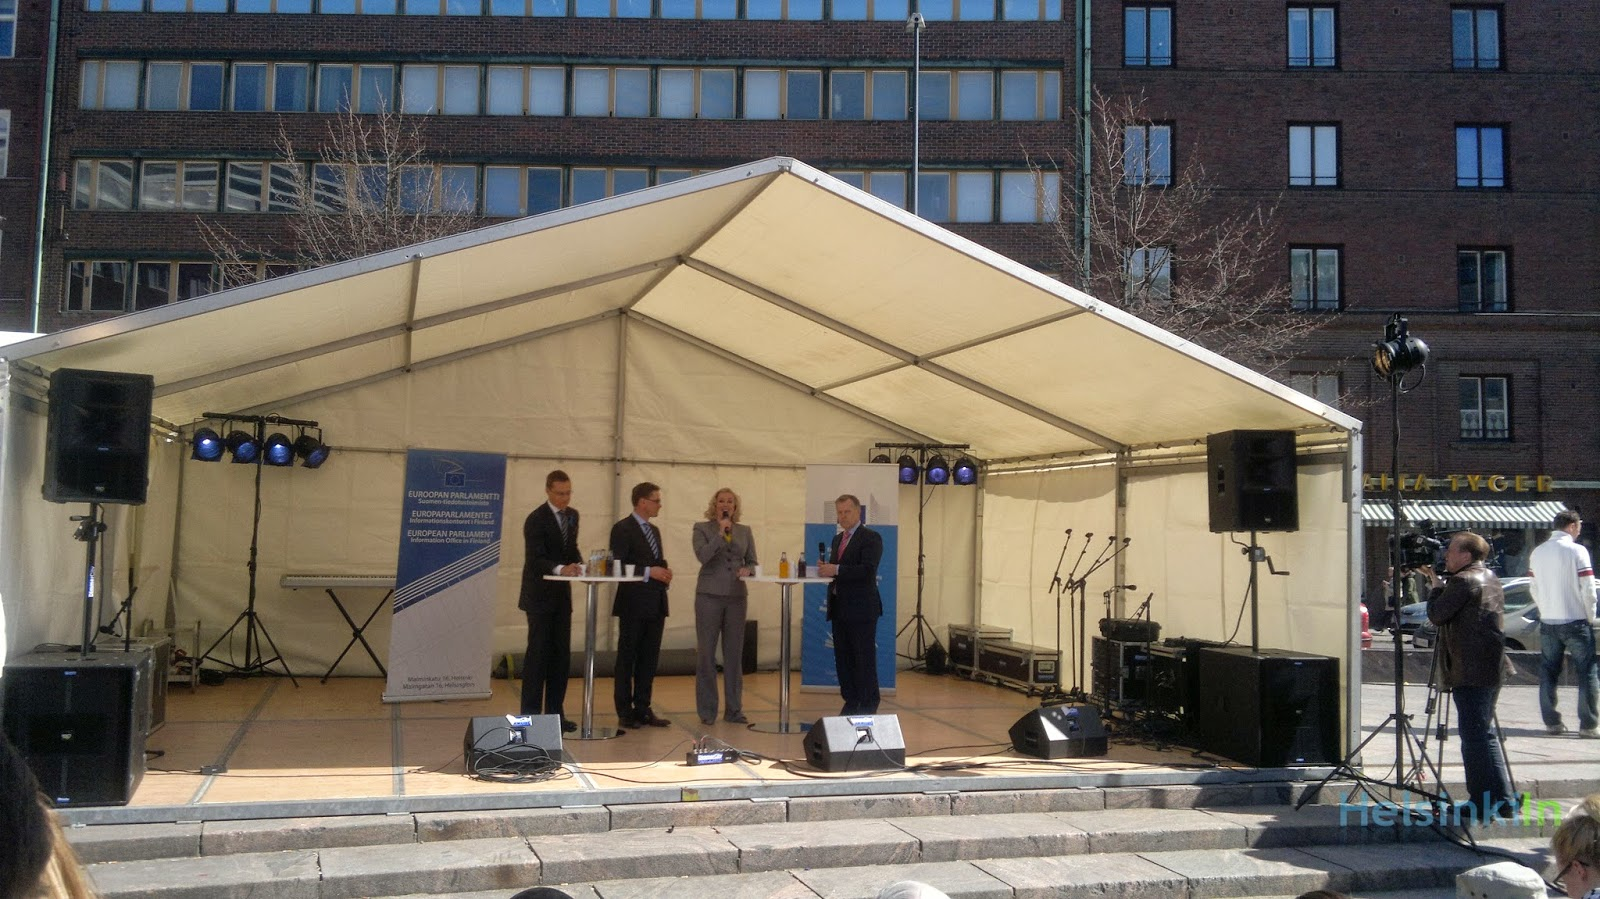 Europe Day 2012 with Alexander Stubb, Jyrki Katainen and Jutta Urpilainen